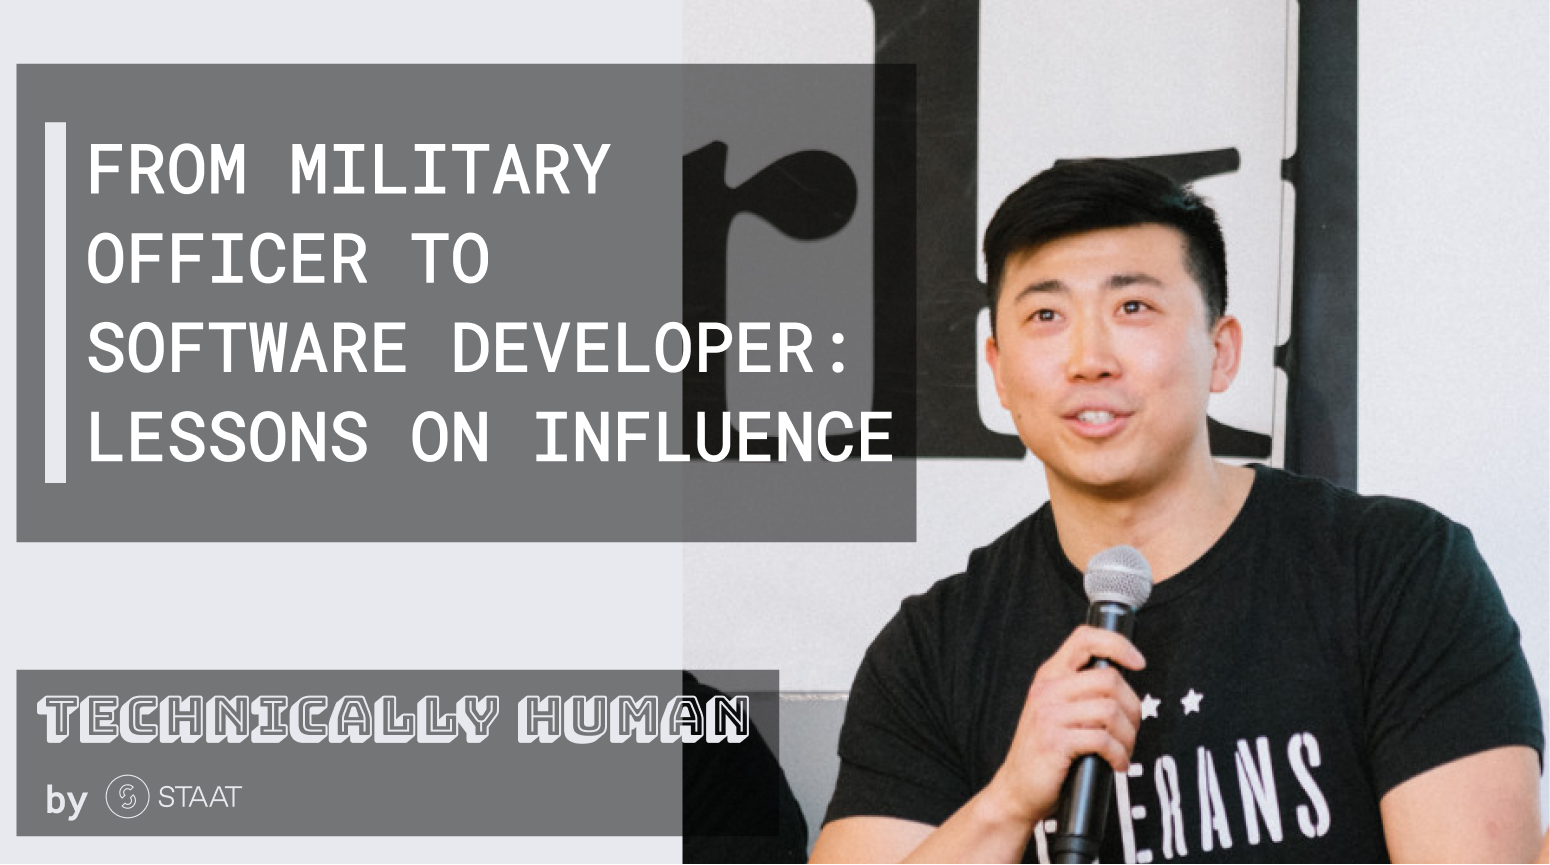 From Military Officer to Software Developer: Lessons on Influence